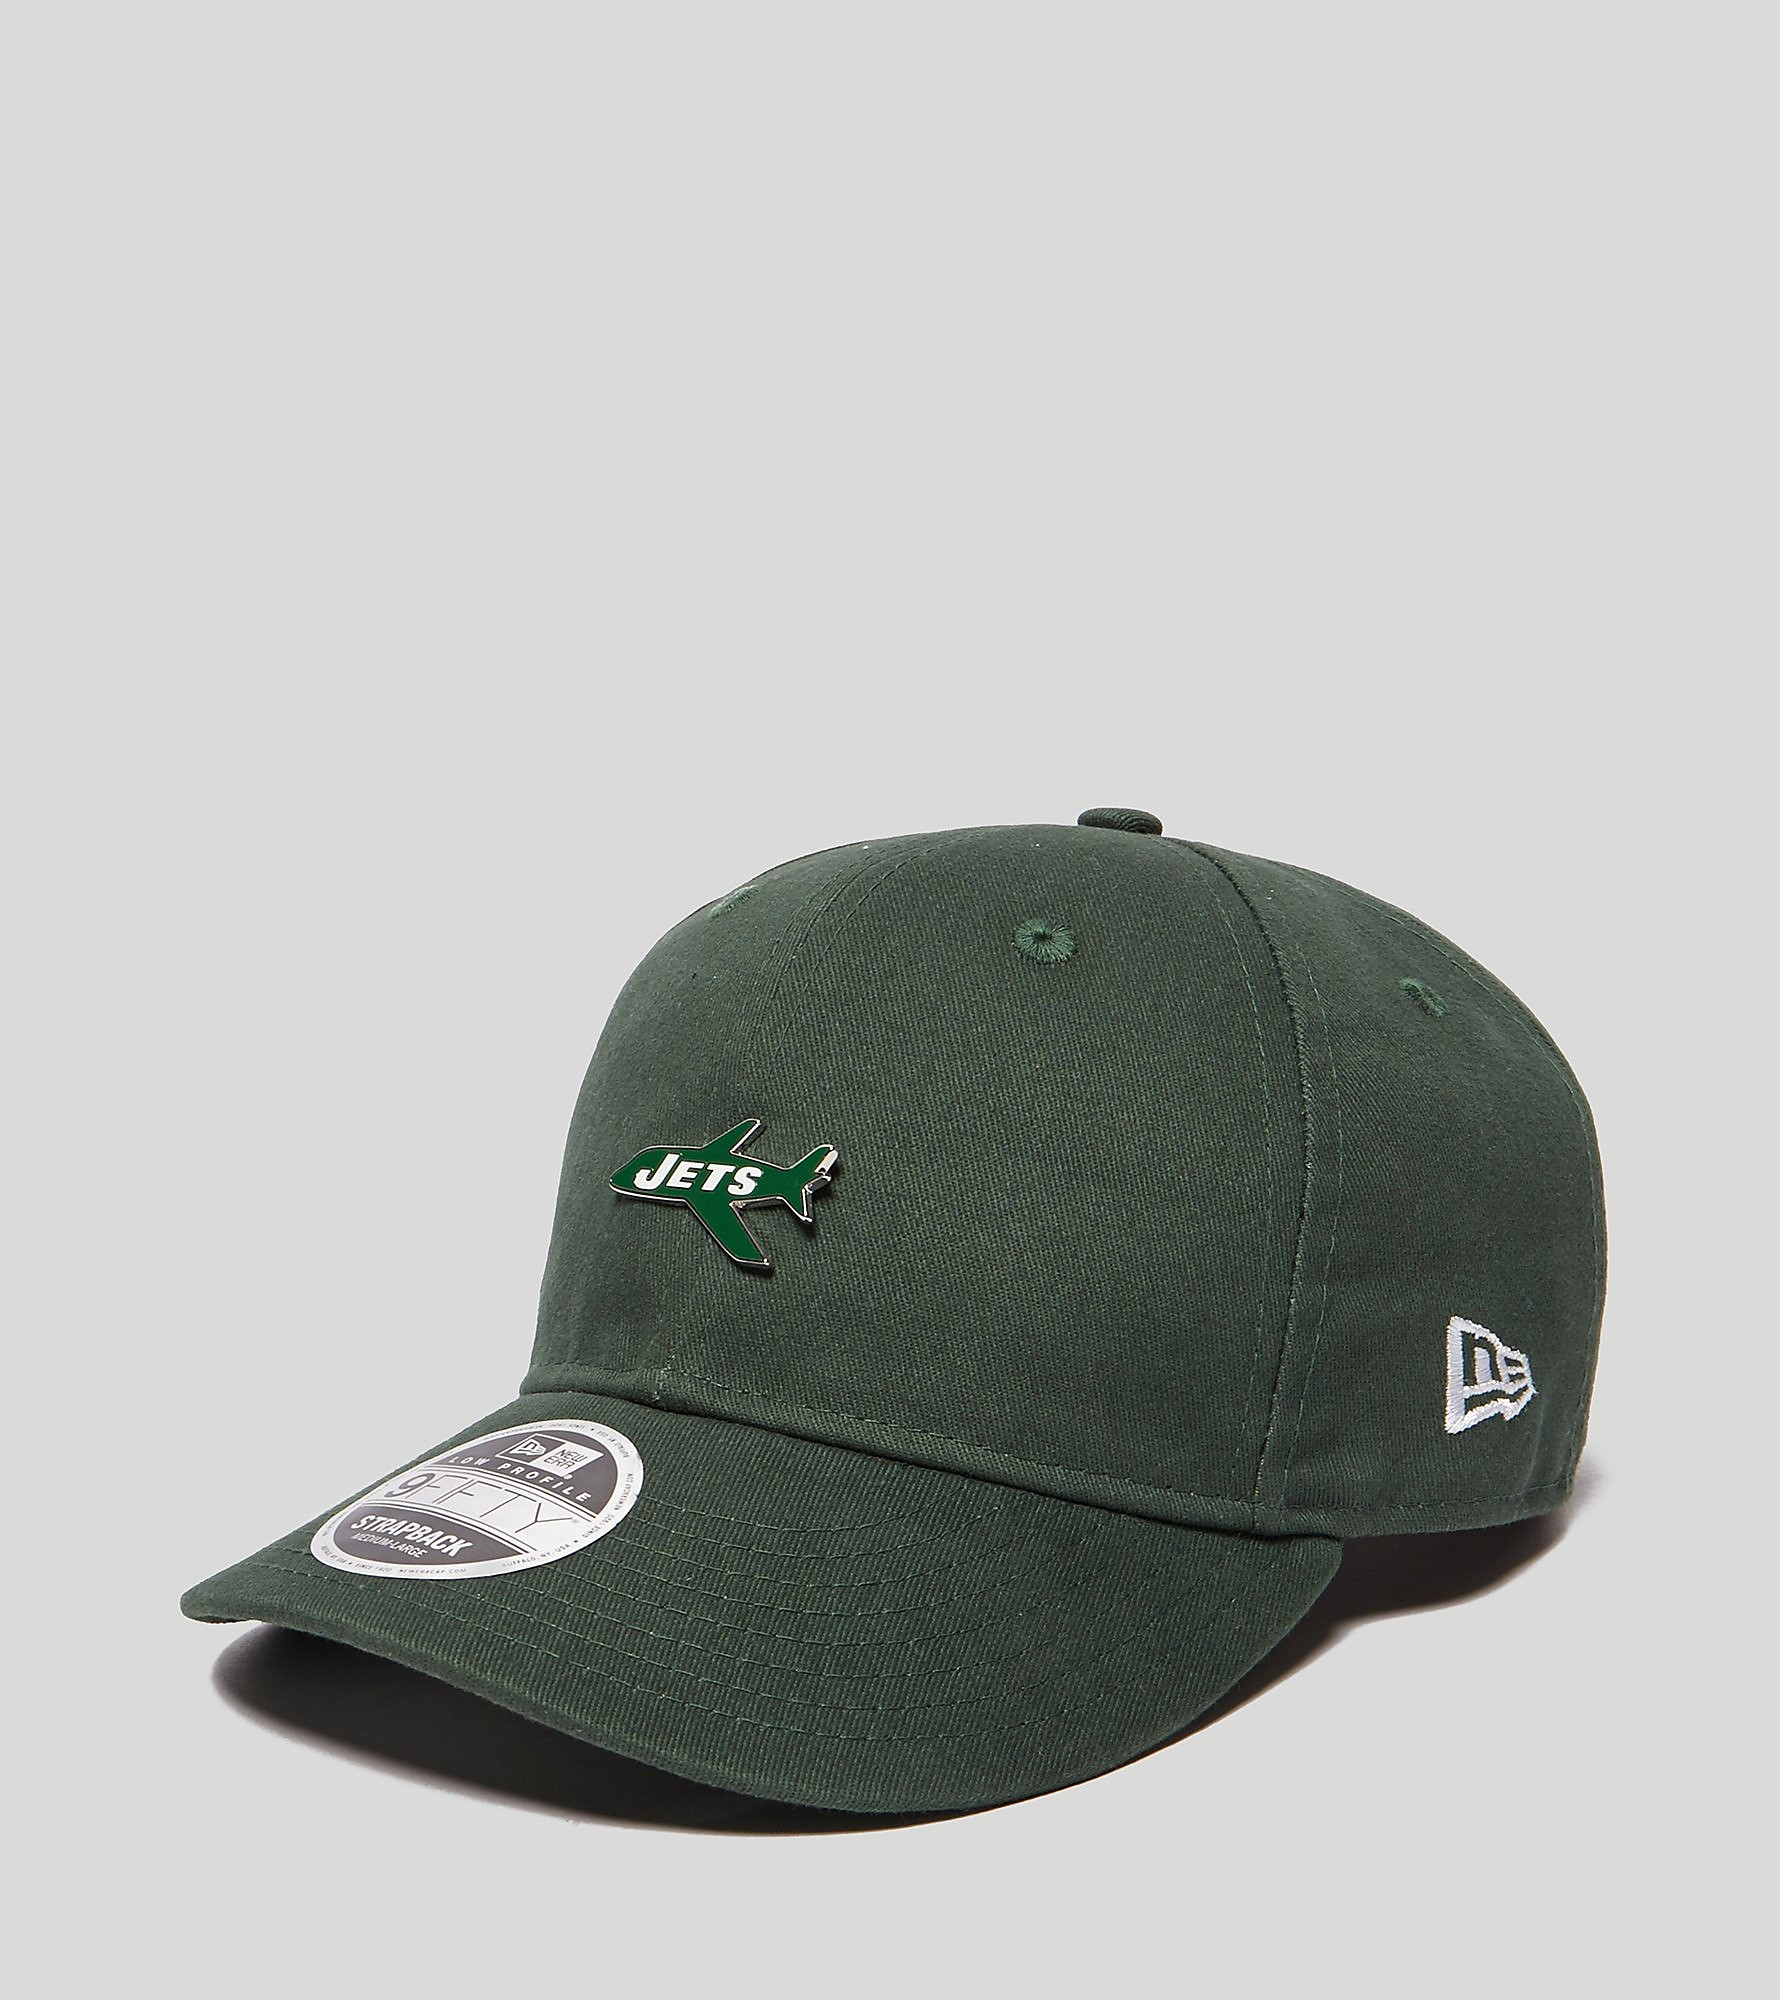 New Era 9FIFTY Low Jets Pin Strapback Cap